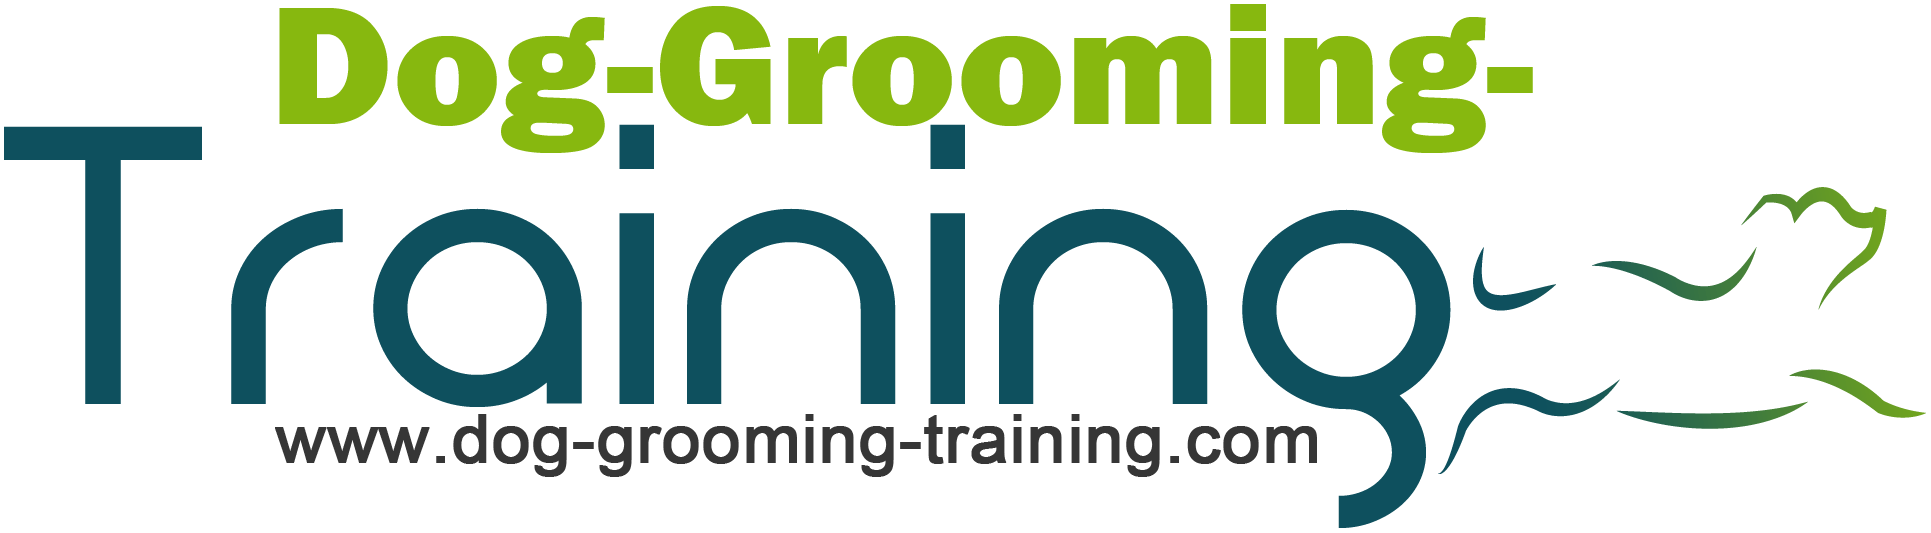 Dog-Grooming-Training.com